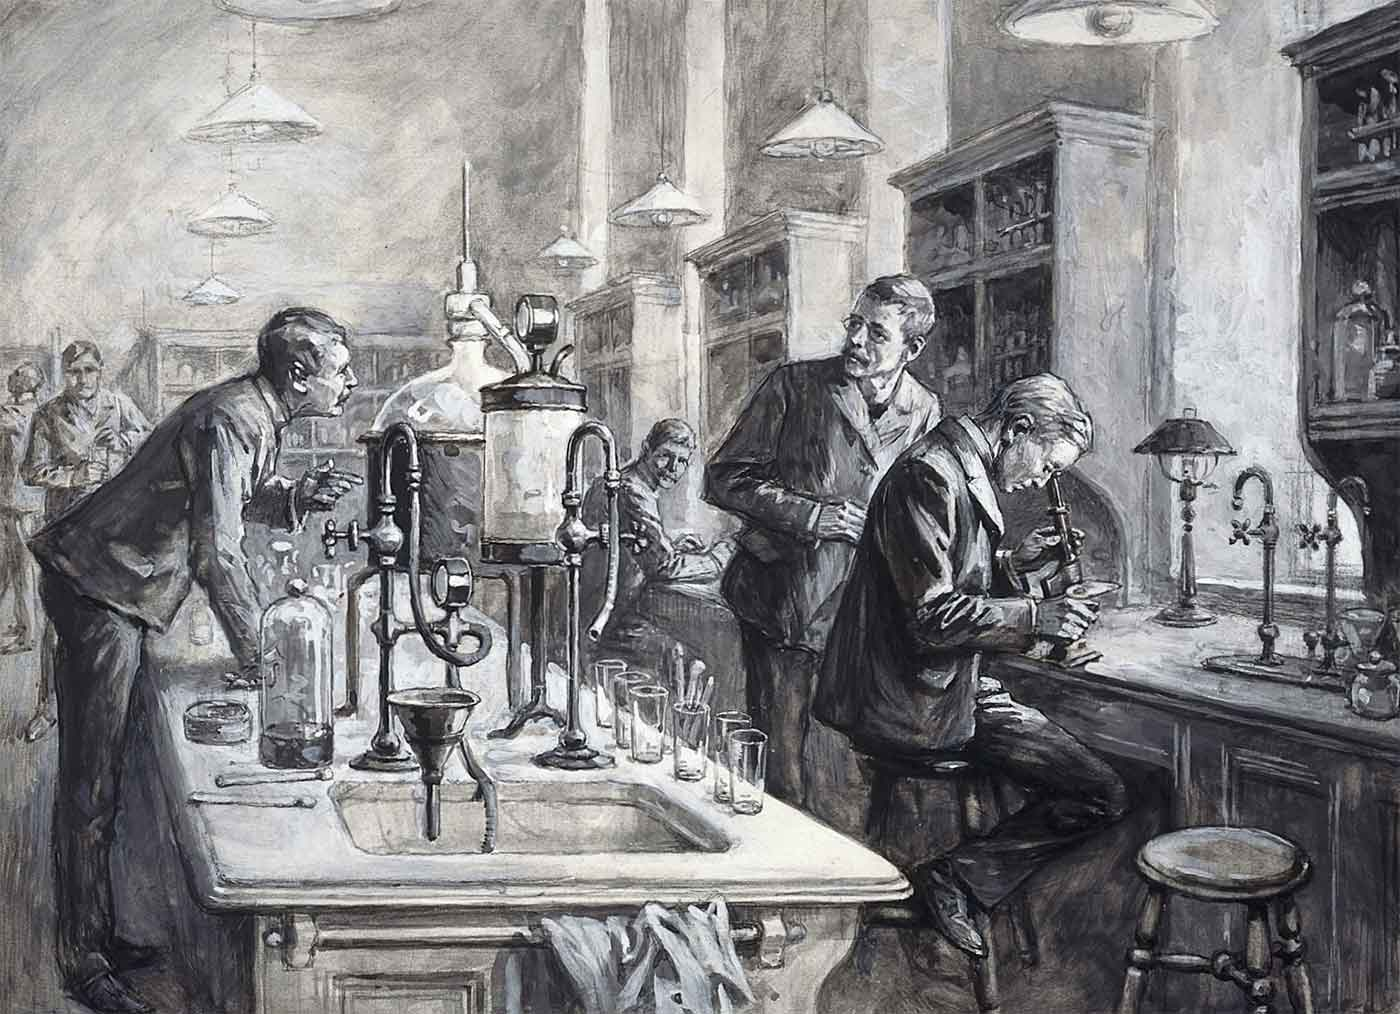 Sir Ronald Ross, C.S. Sherrington, and R.W. Boyce in a laboratory at the Liverpool School of Tropical Medicine. Gouache by W.T. Maud, 1899.